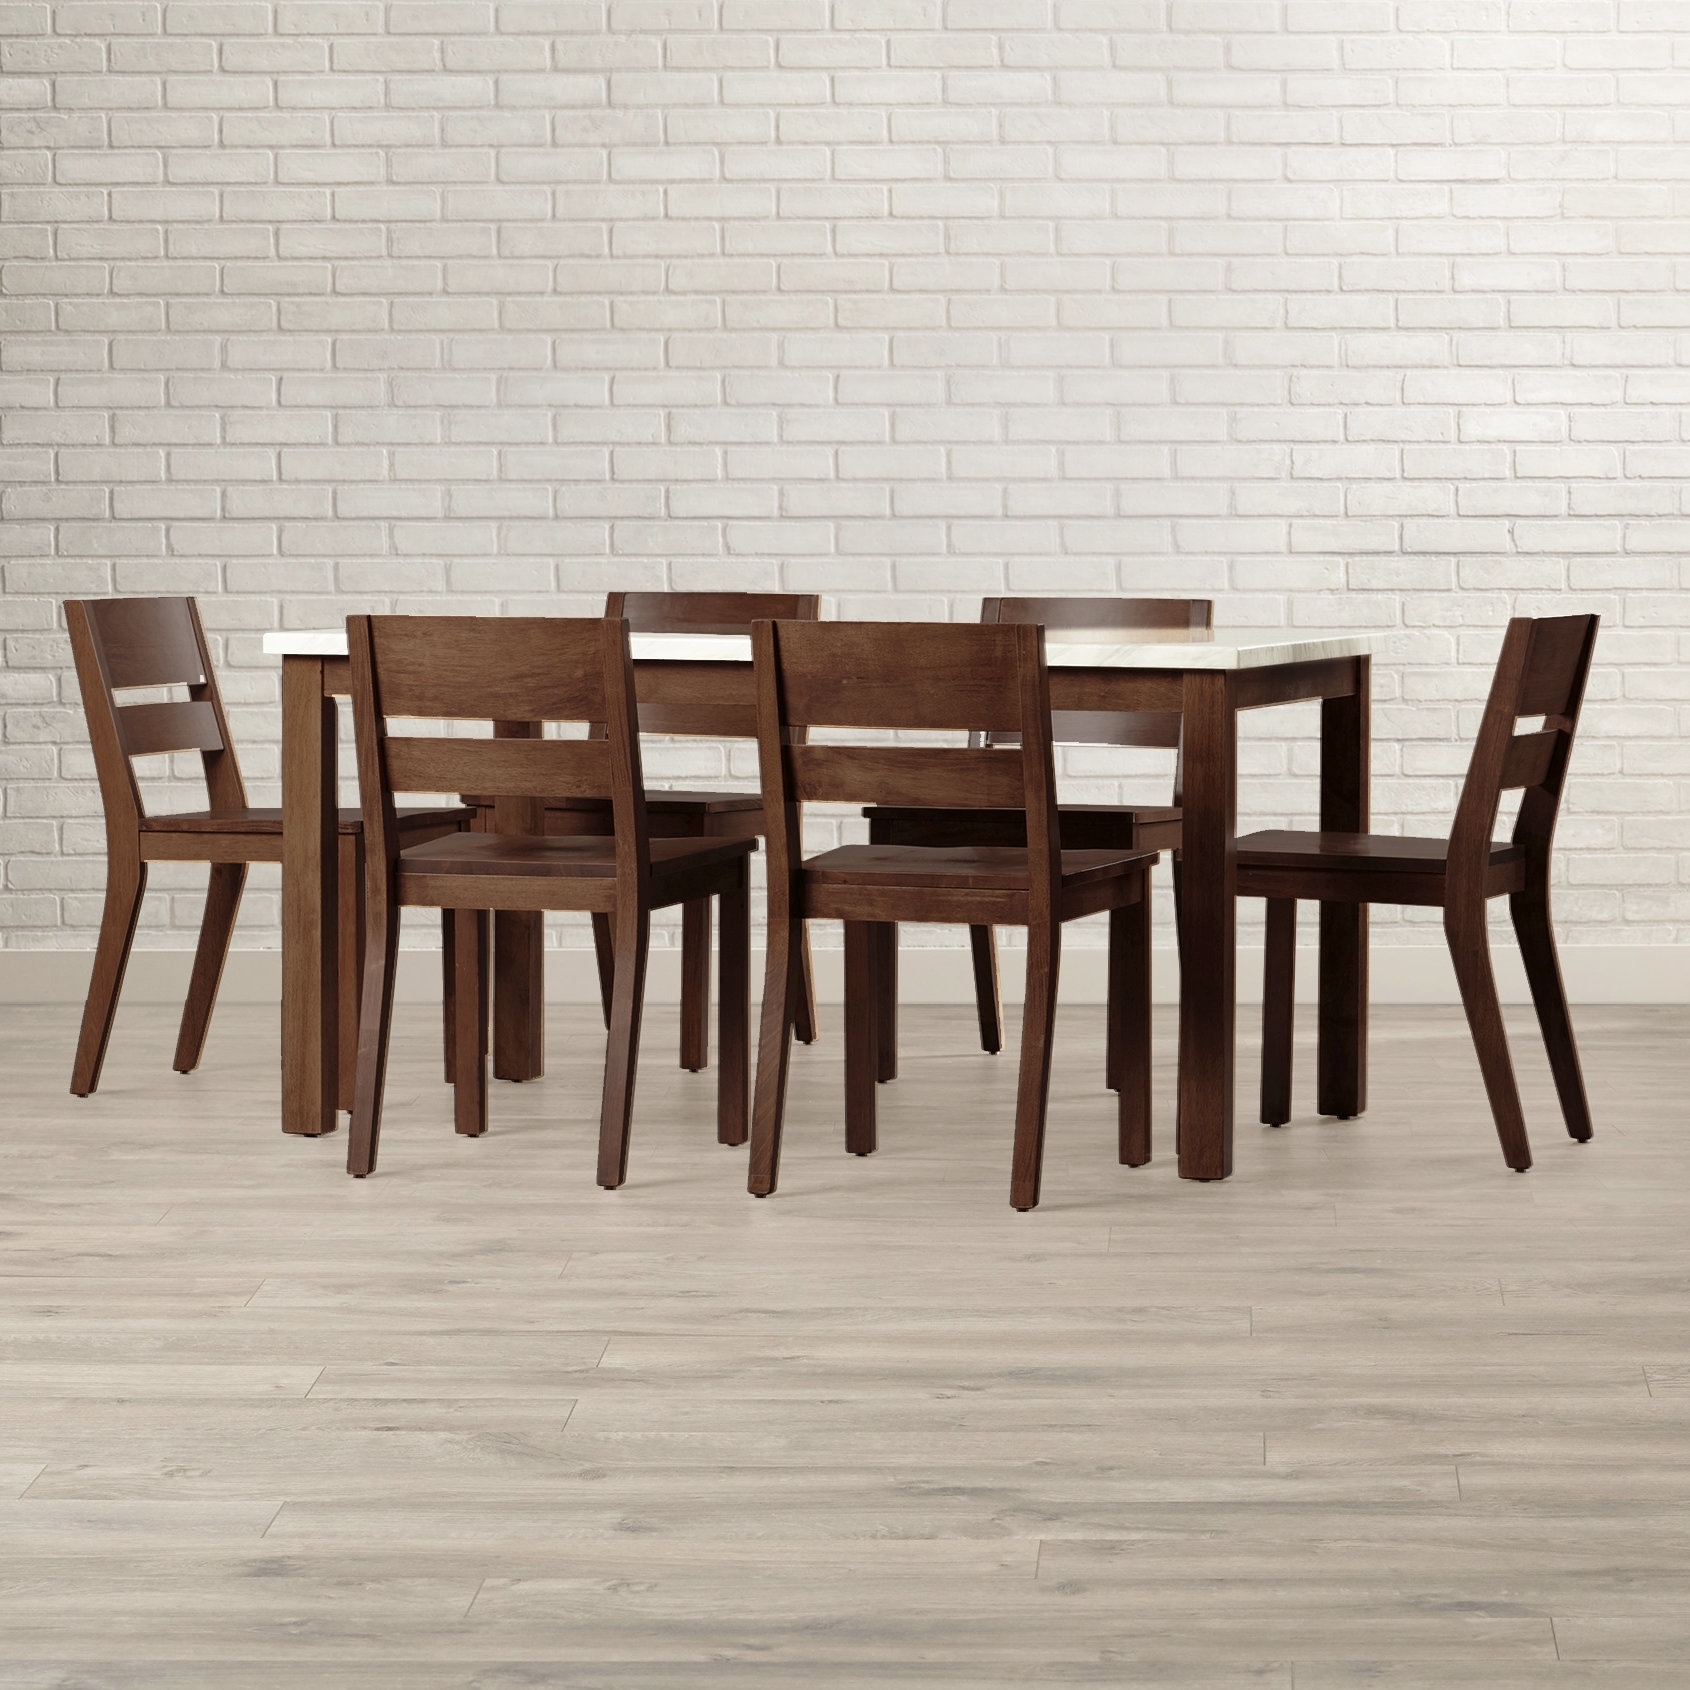 Brayden Studio Losey 7 Piece Dining Set & Reviews | Wayfair With Most Current Candice Ii 5 Piece Round Dining Sets With Slat Back Side Chairs (Image 2 of 20)